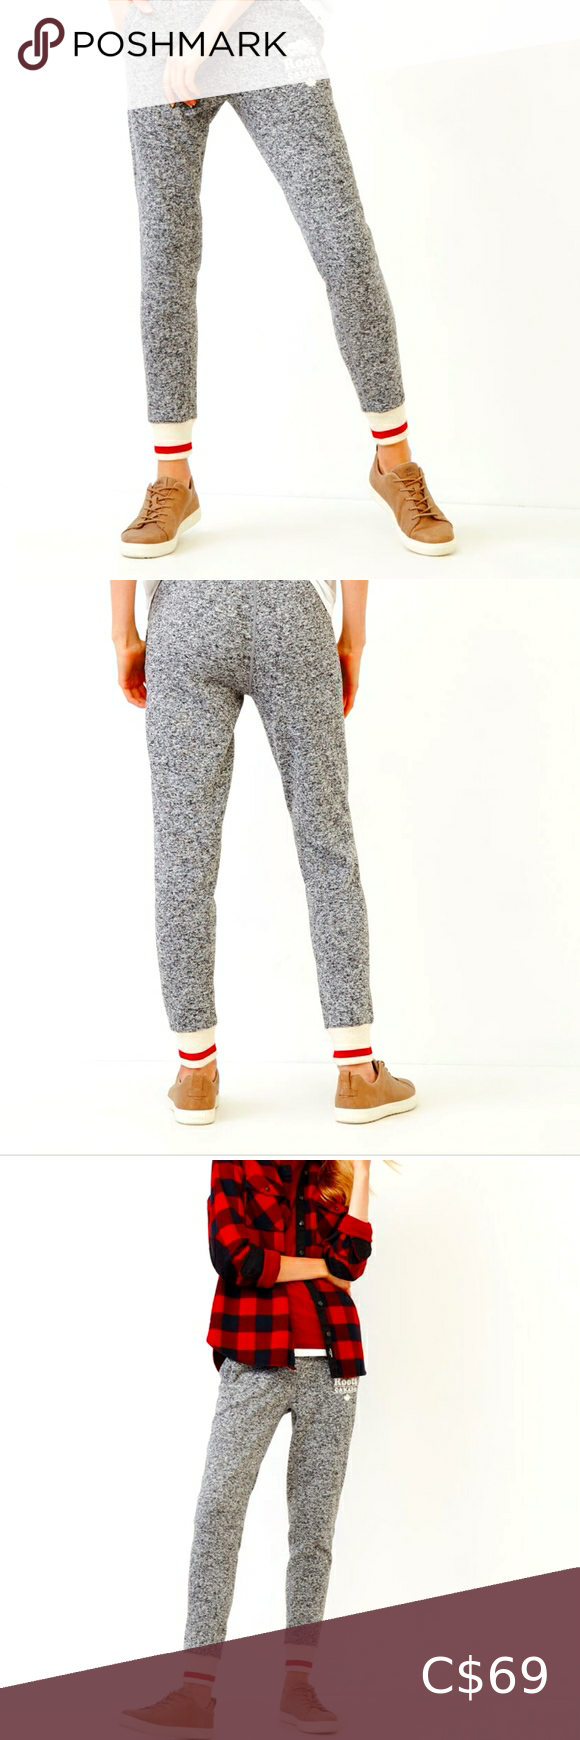 🎄 NWT Roots Cabin Cozy Sweatpant